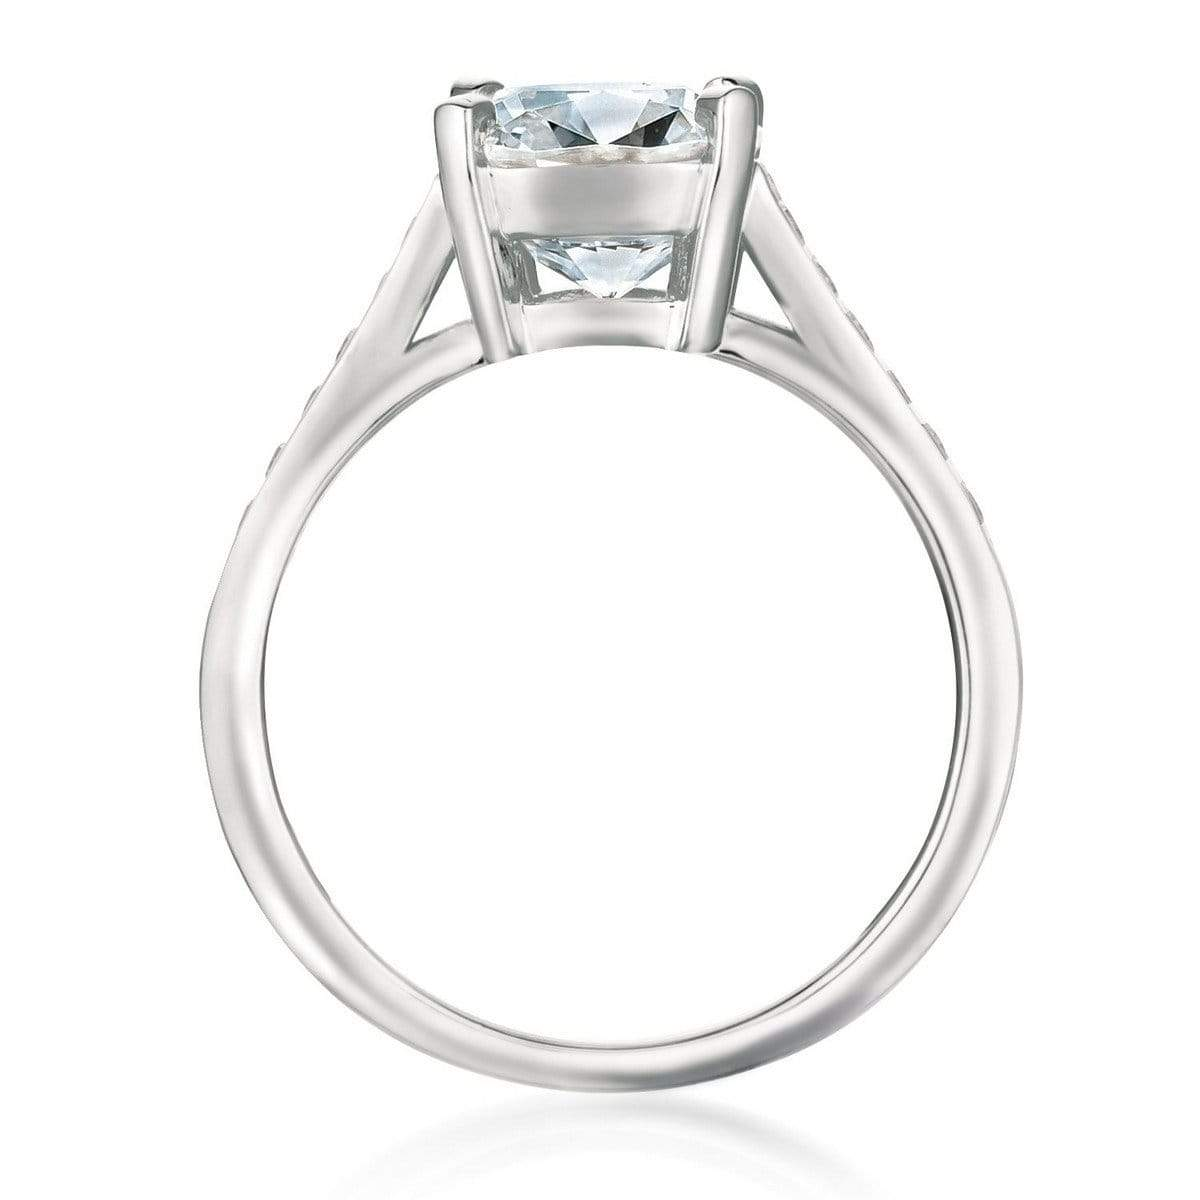 Crislu Jewelry CRISLU Radiant Cushion Cut Ring finished in Pure Platinum - Size 6